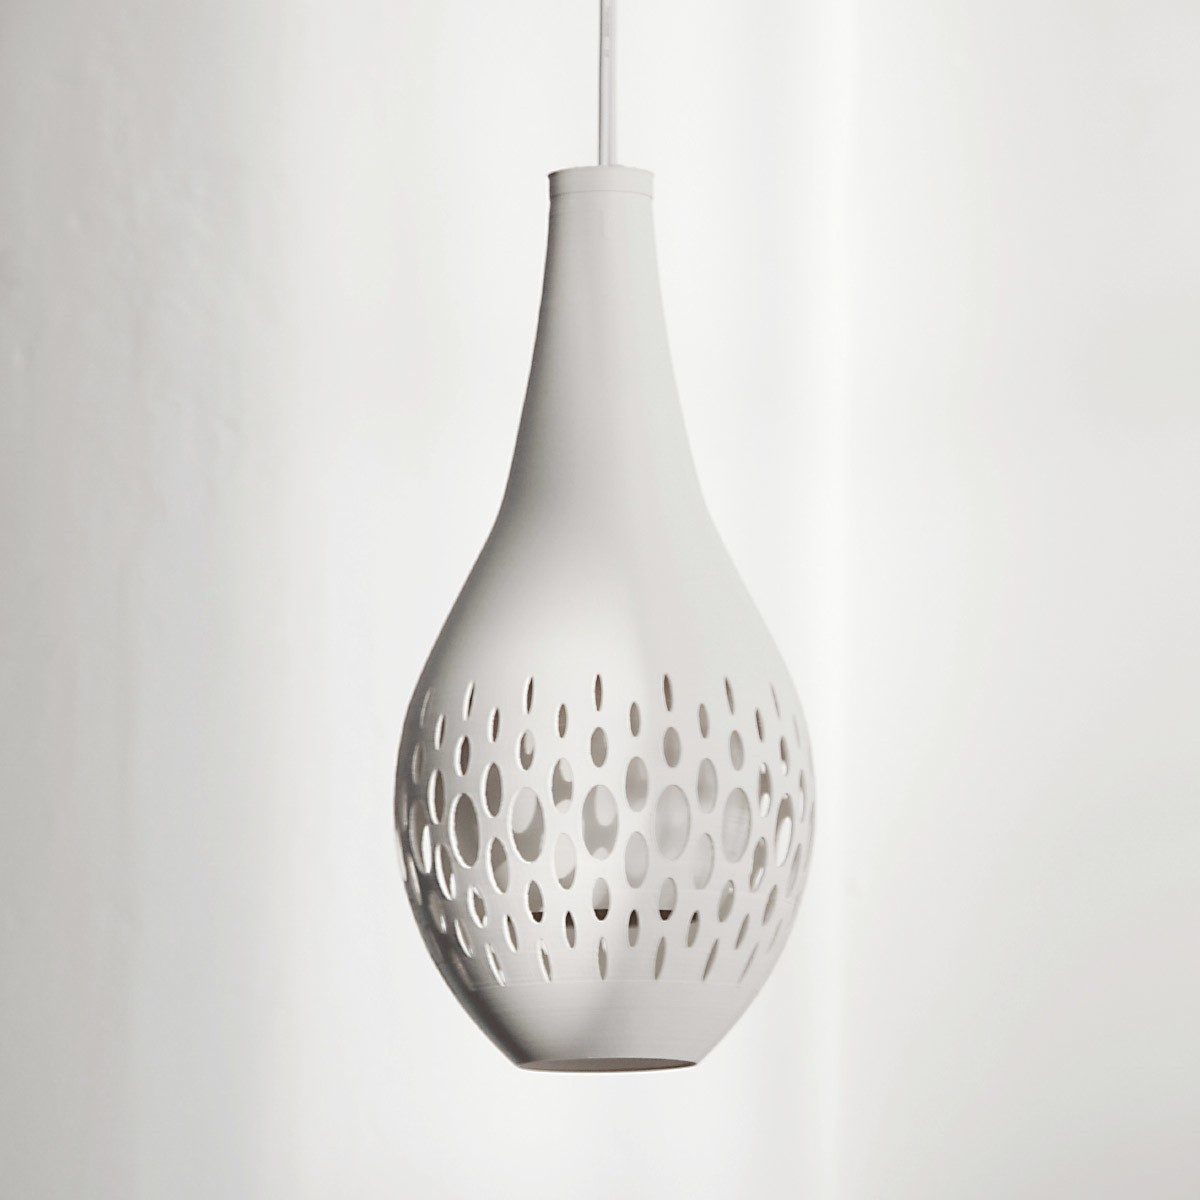 drip-light_off.jpg Download free STL file gCreate Drip Pendant Light Shade • Design to 3D print, gCreate